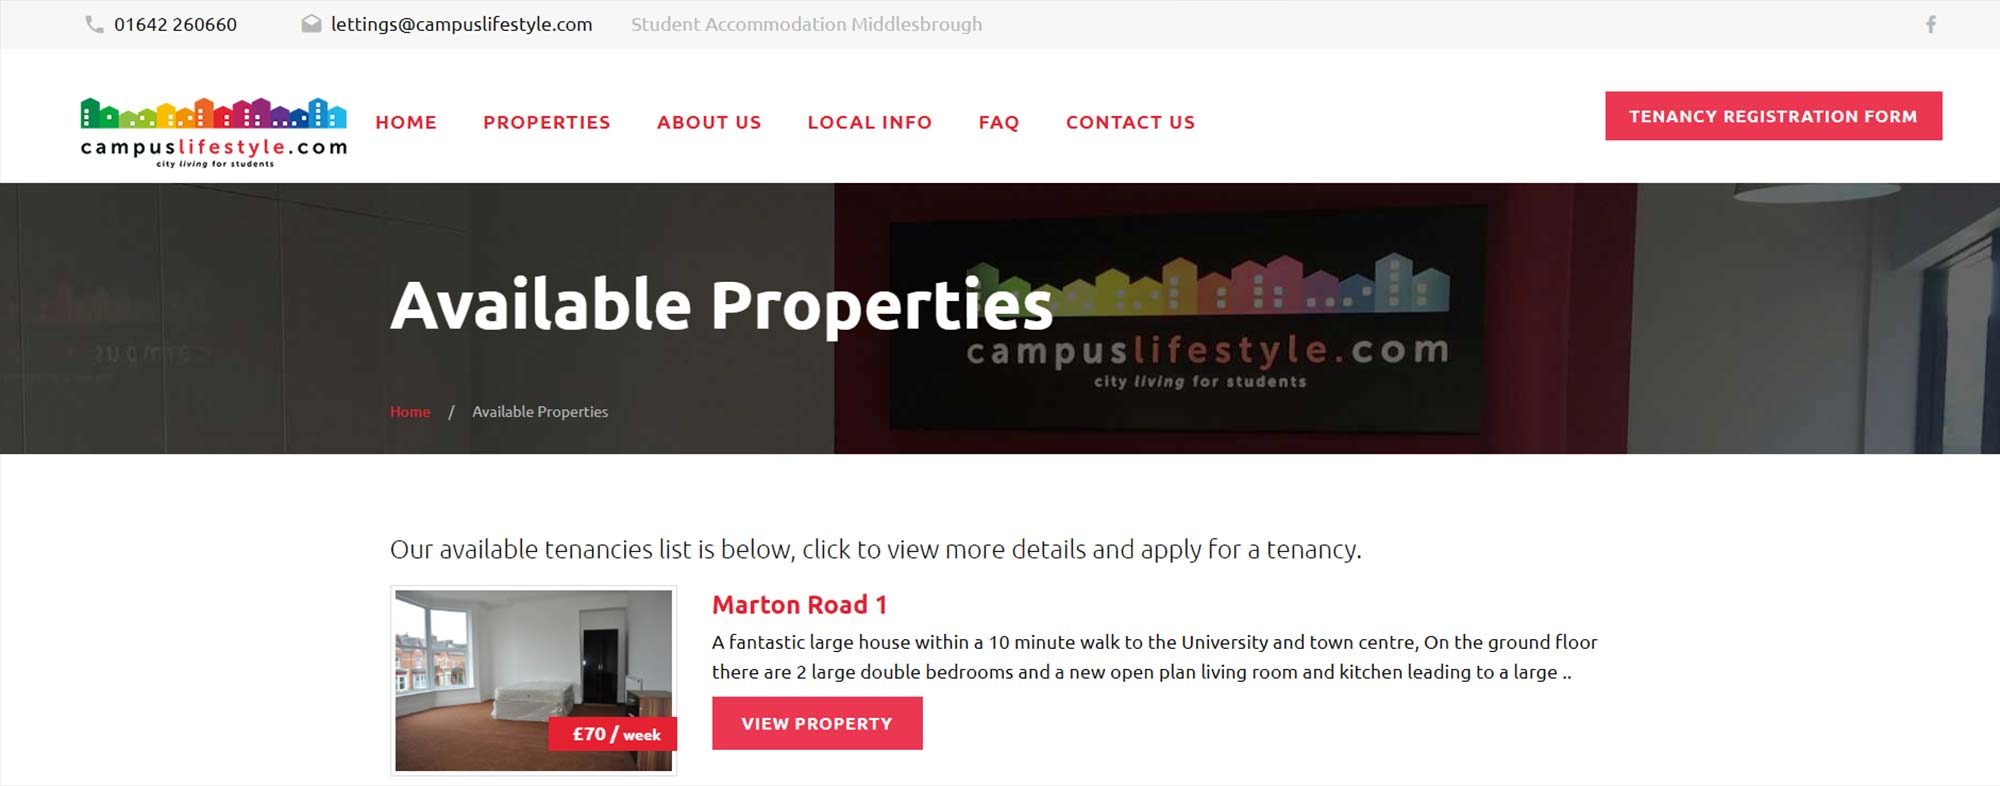 Campus Lifestyle Website Design